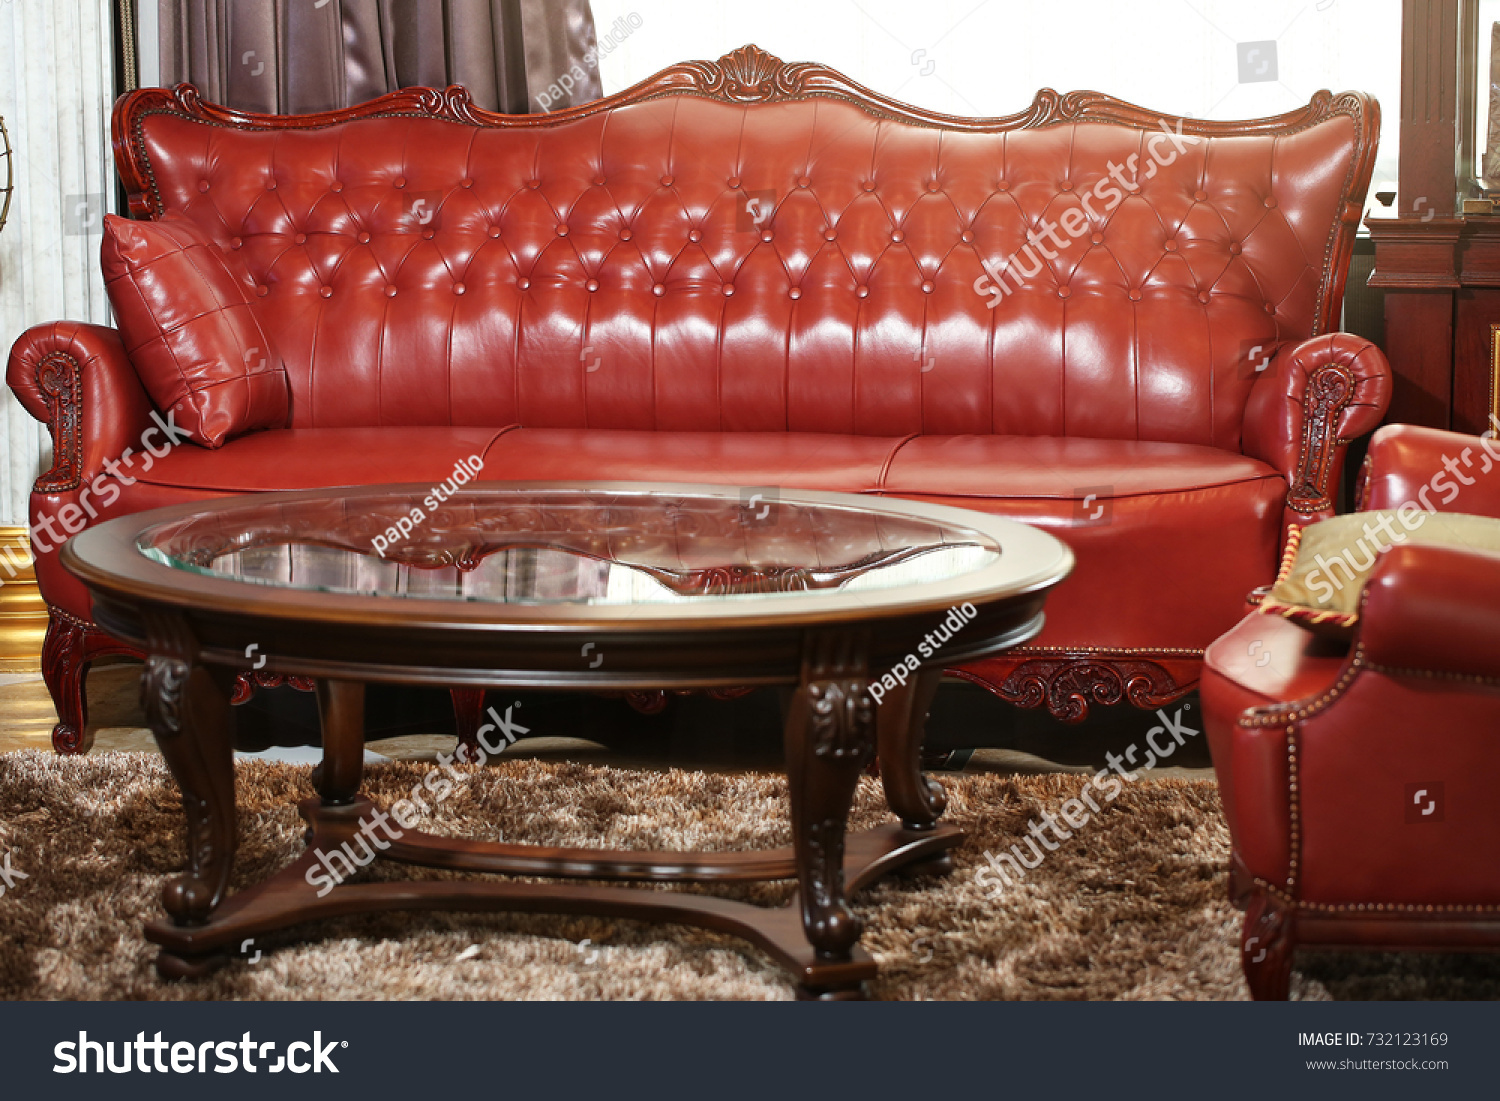 Leather Sofa Vintage Style Room Stock Photo 732123169 Shutterstock ~ Leather Sofa Vintage Style